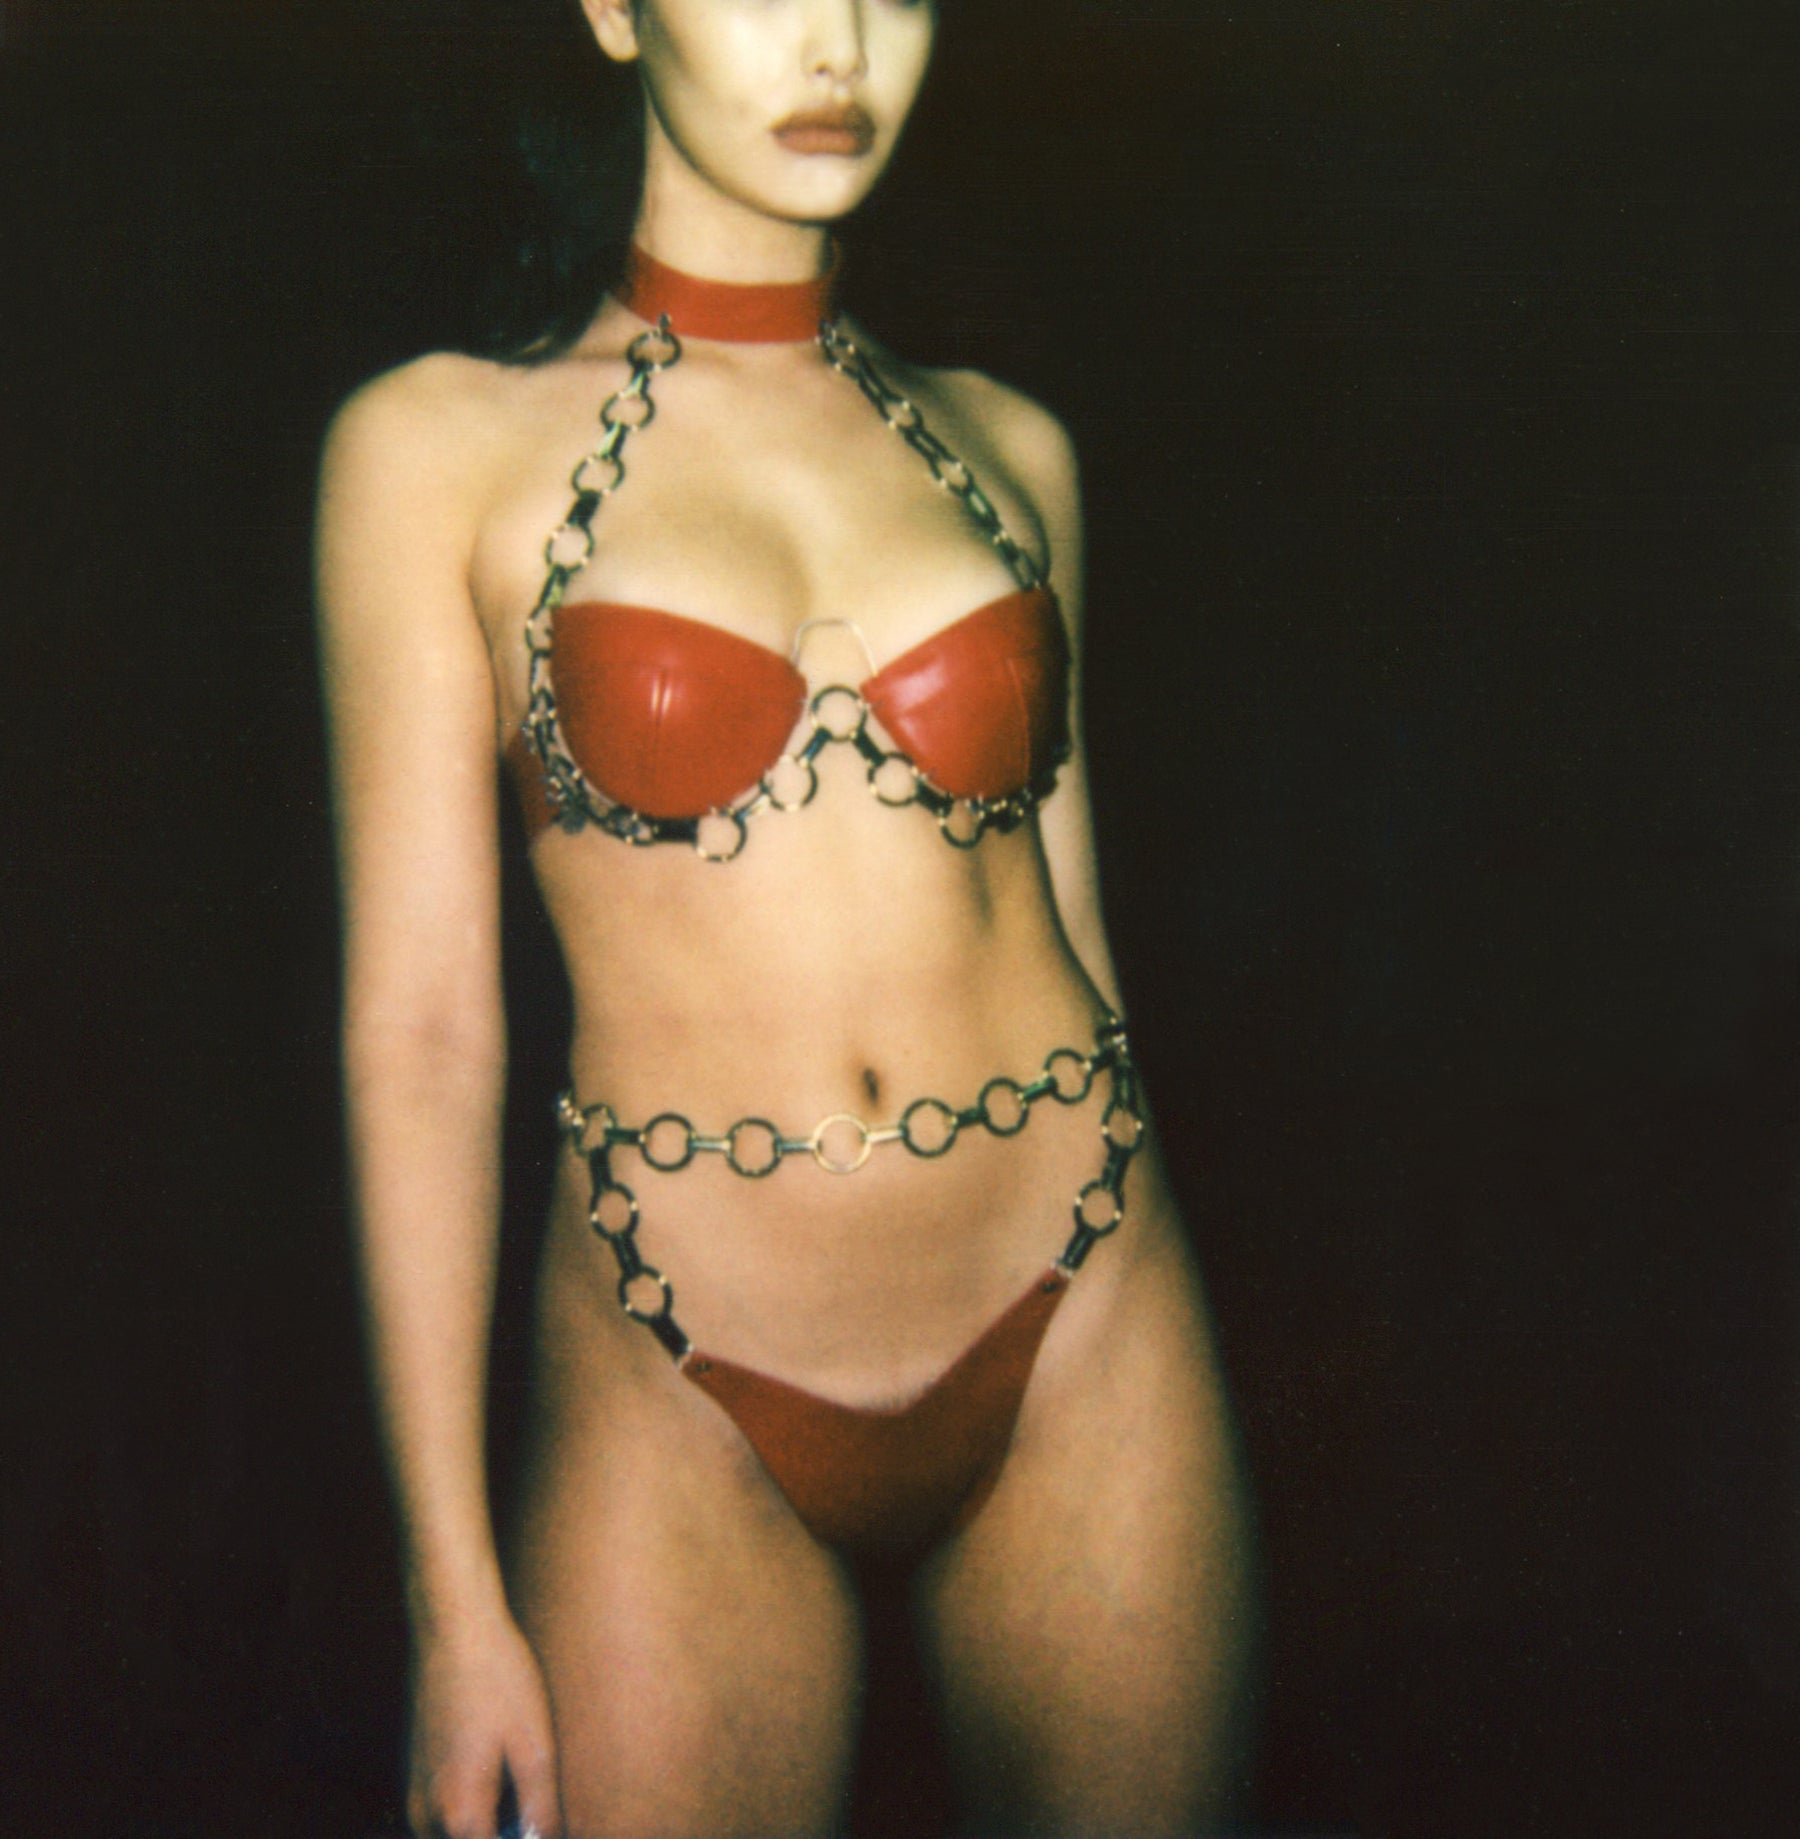 R and M Leathers Chain Bra